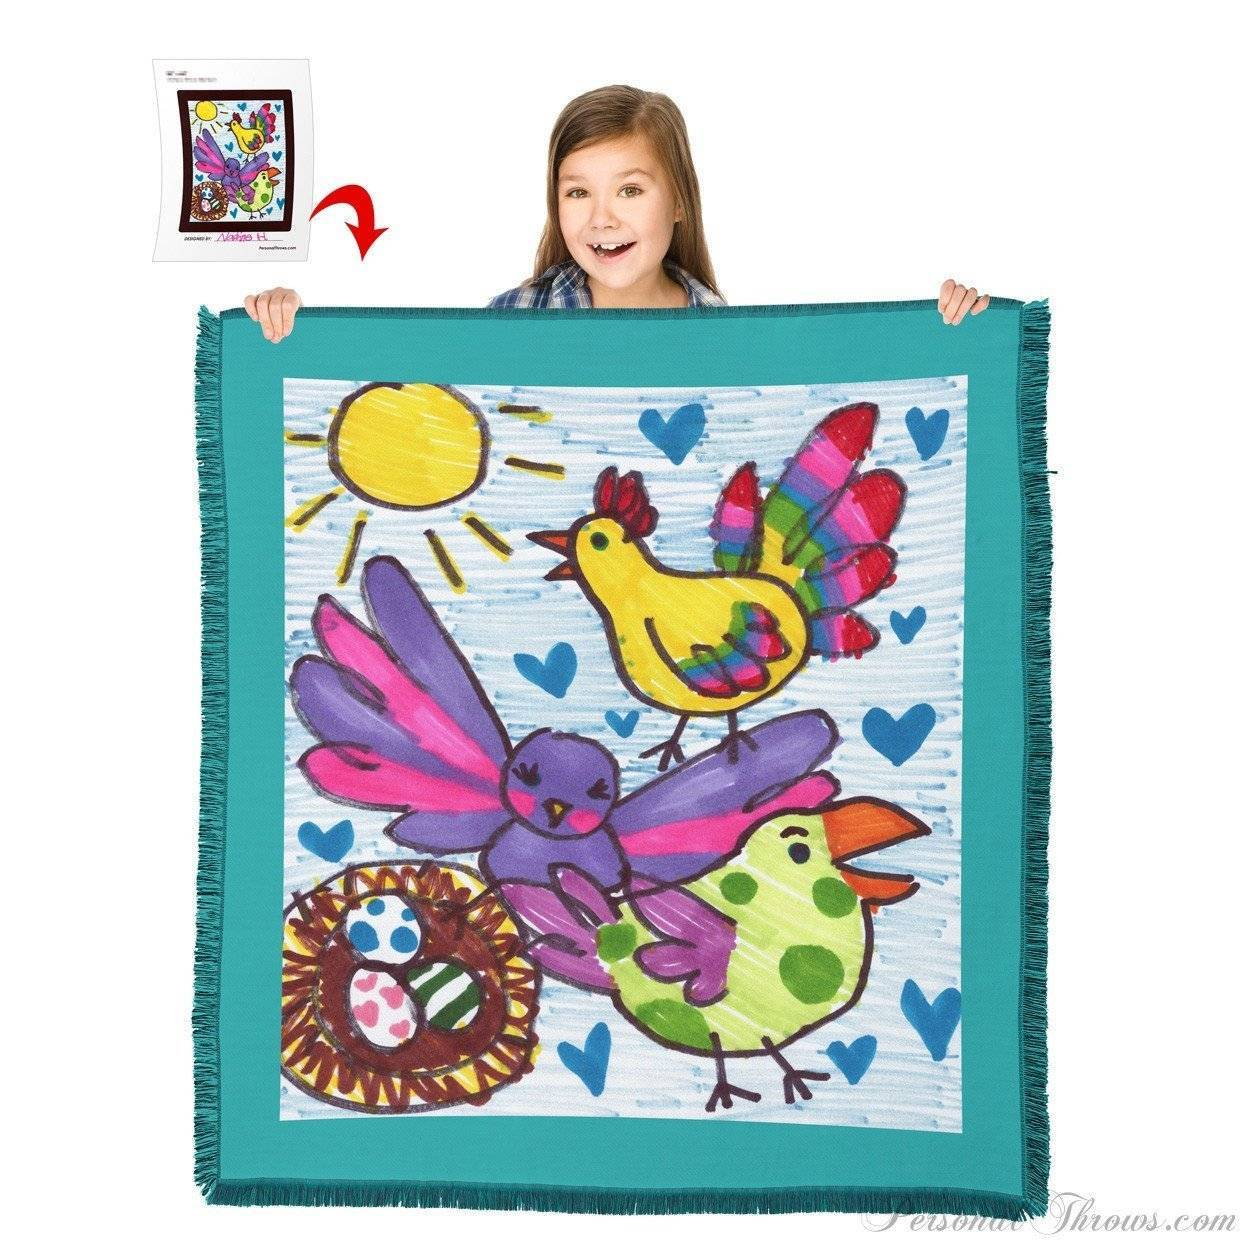 "Kids' Creations - Turn Your Child's Drawing Into A 60"" X 54"" HD Woven Throw Blanket"